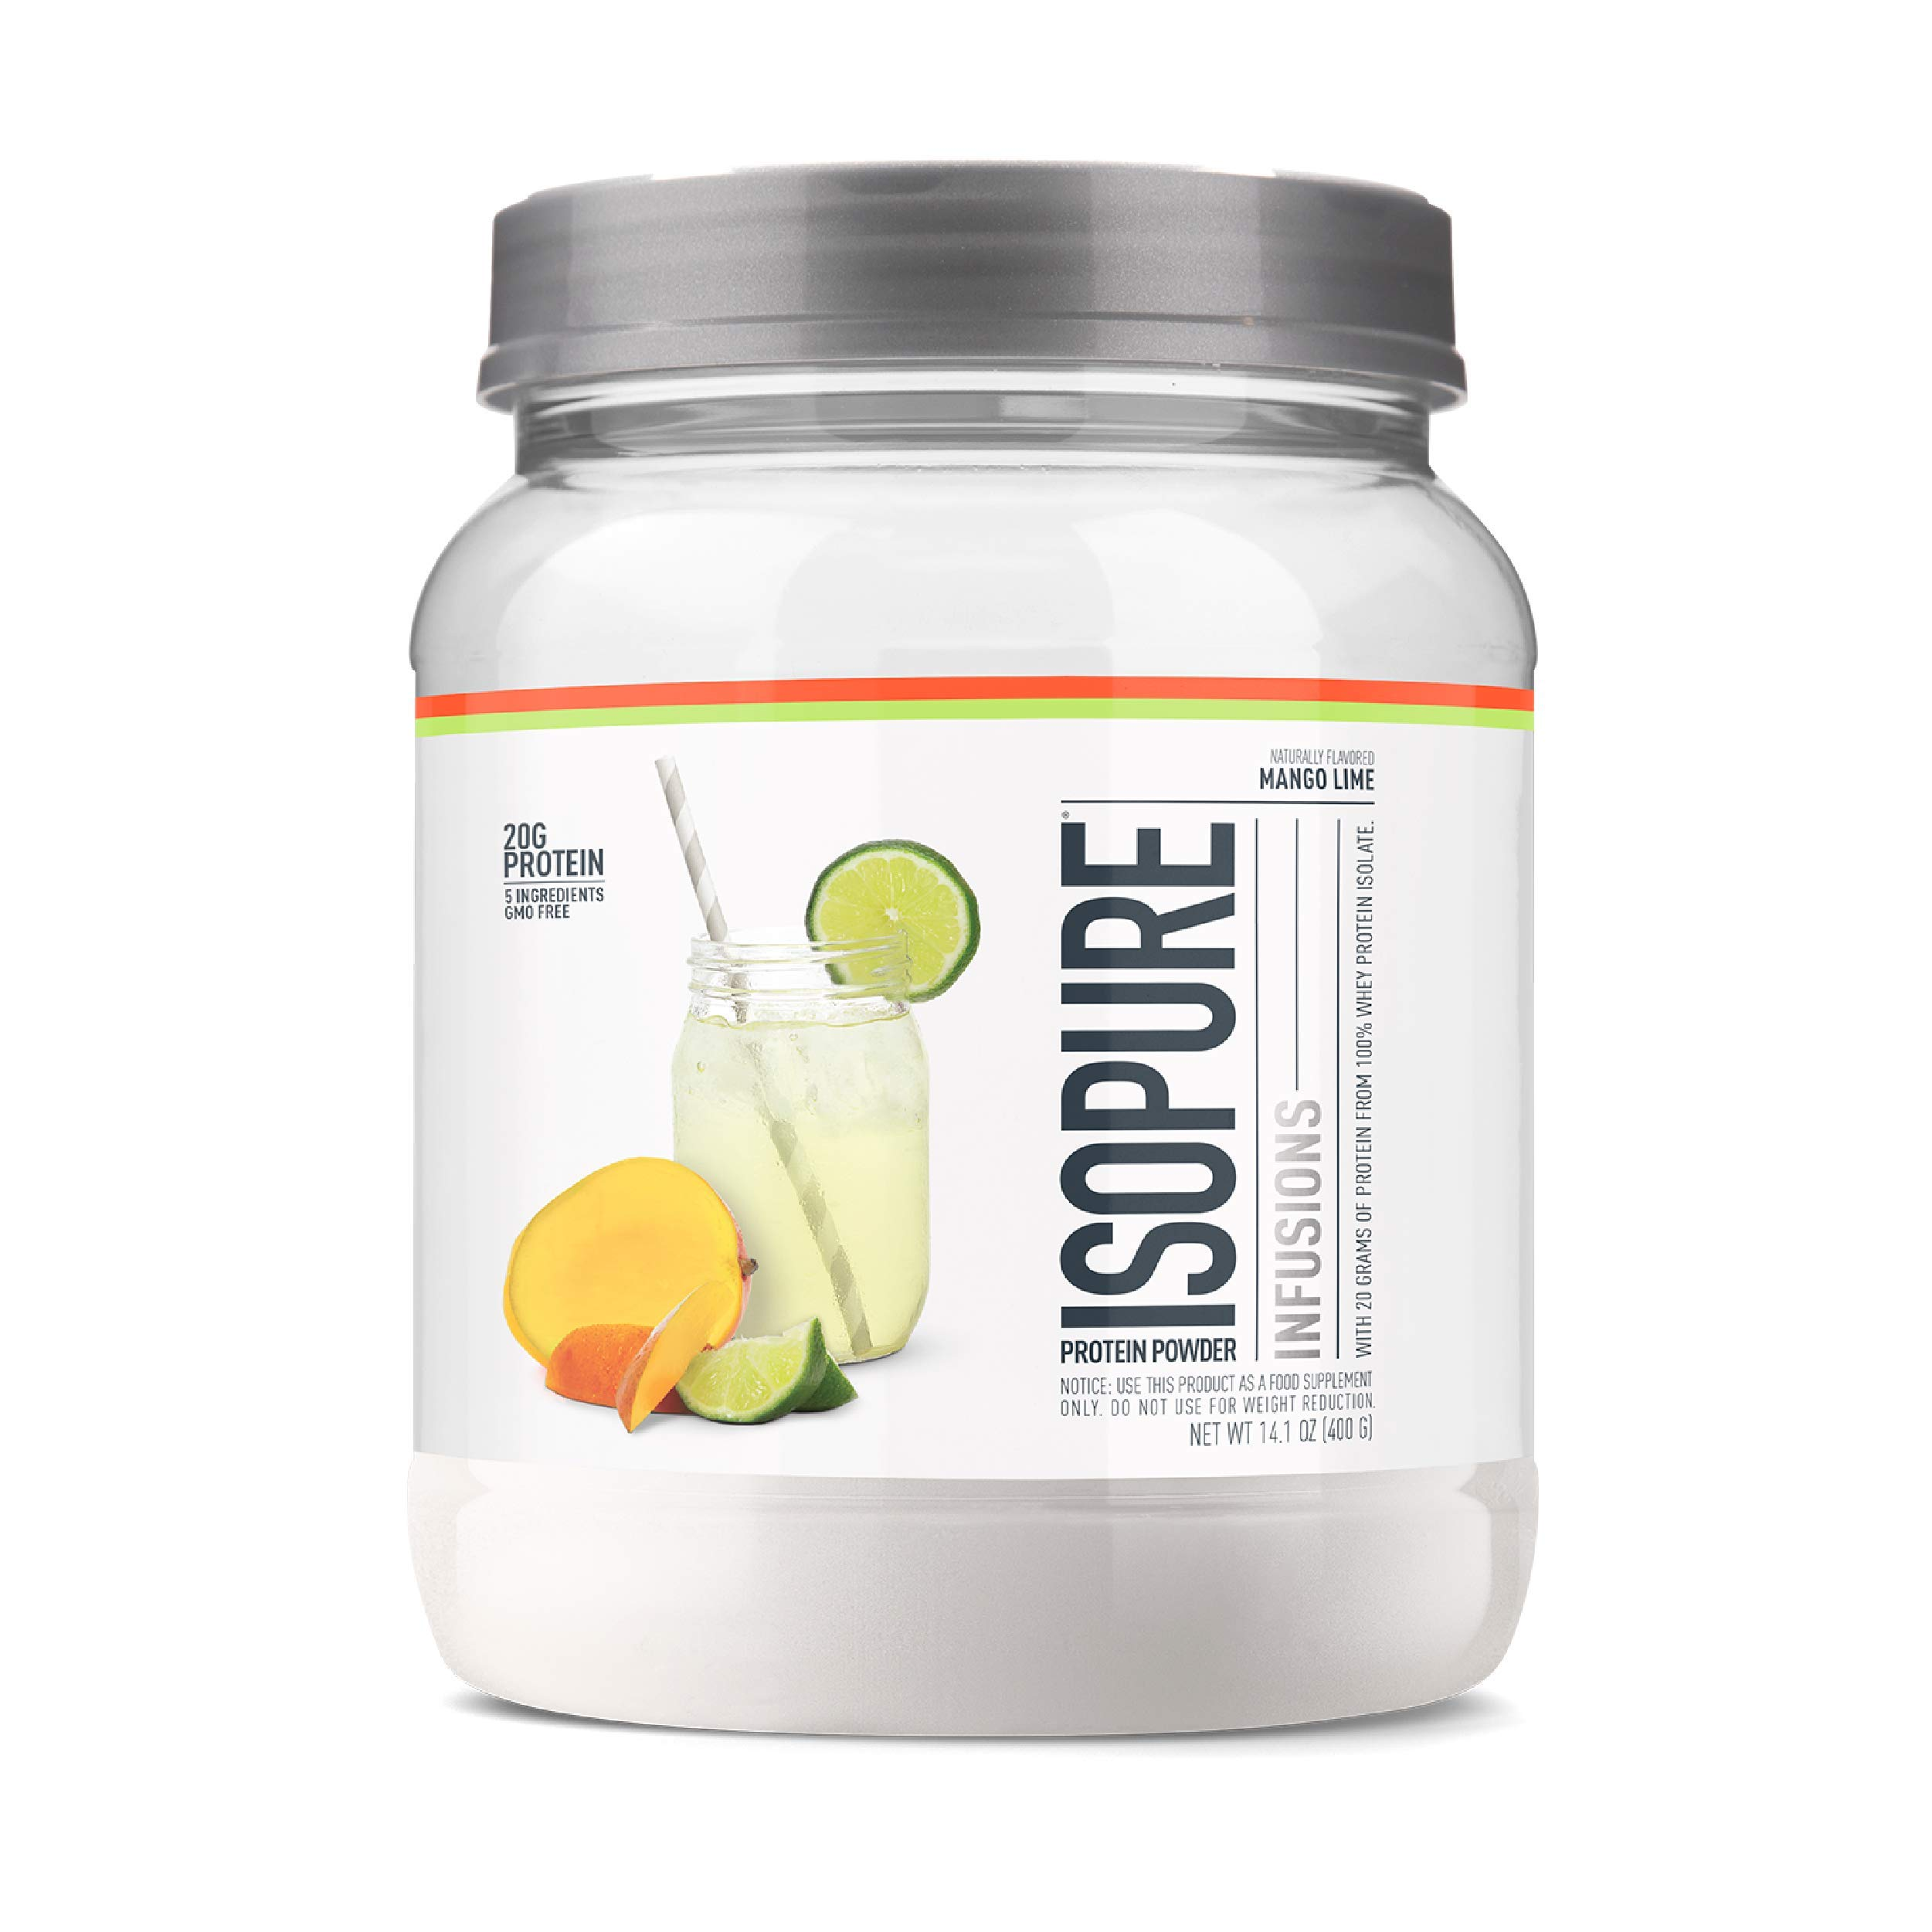 Isopure Refreshingly Light Fruit Flavored Whey Protein Isolate Powder, ''Shake Vigorously & Infuses in a Minute'', Mango Lime, 16 Servings by Isopure